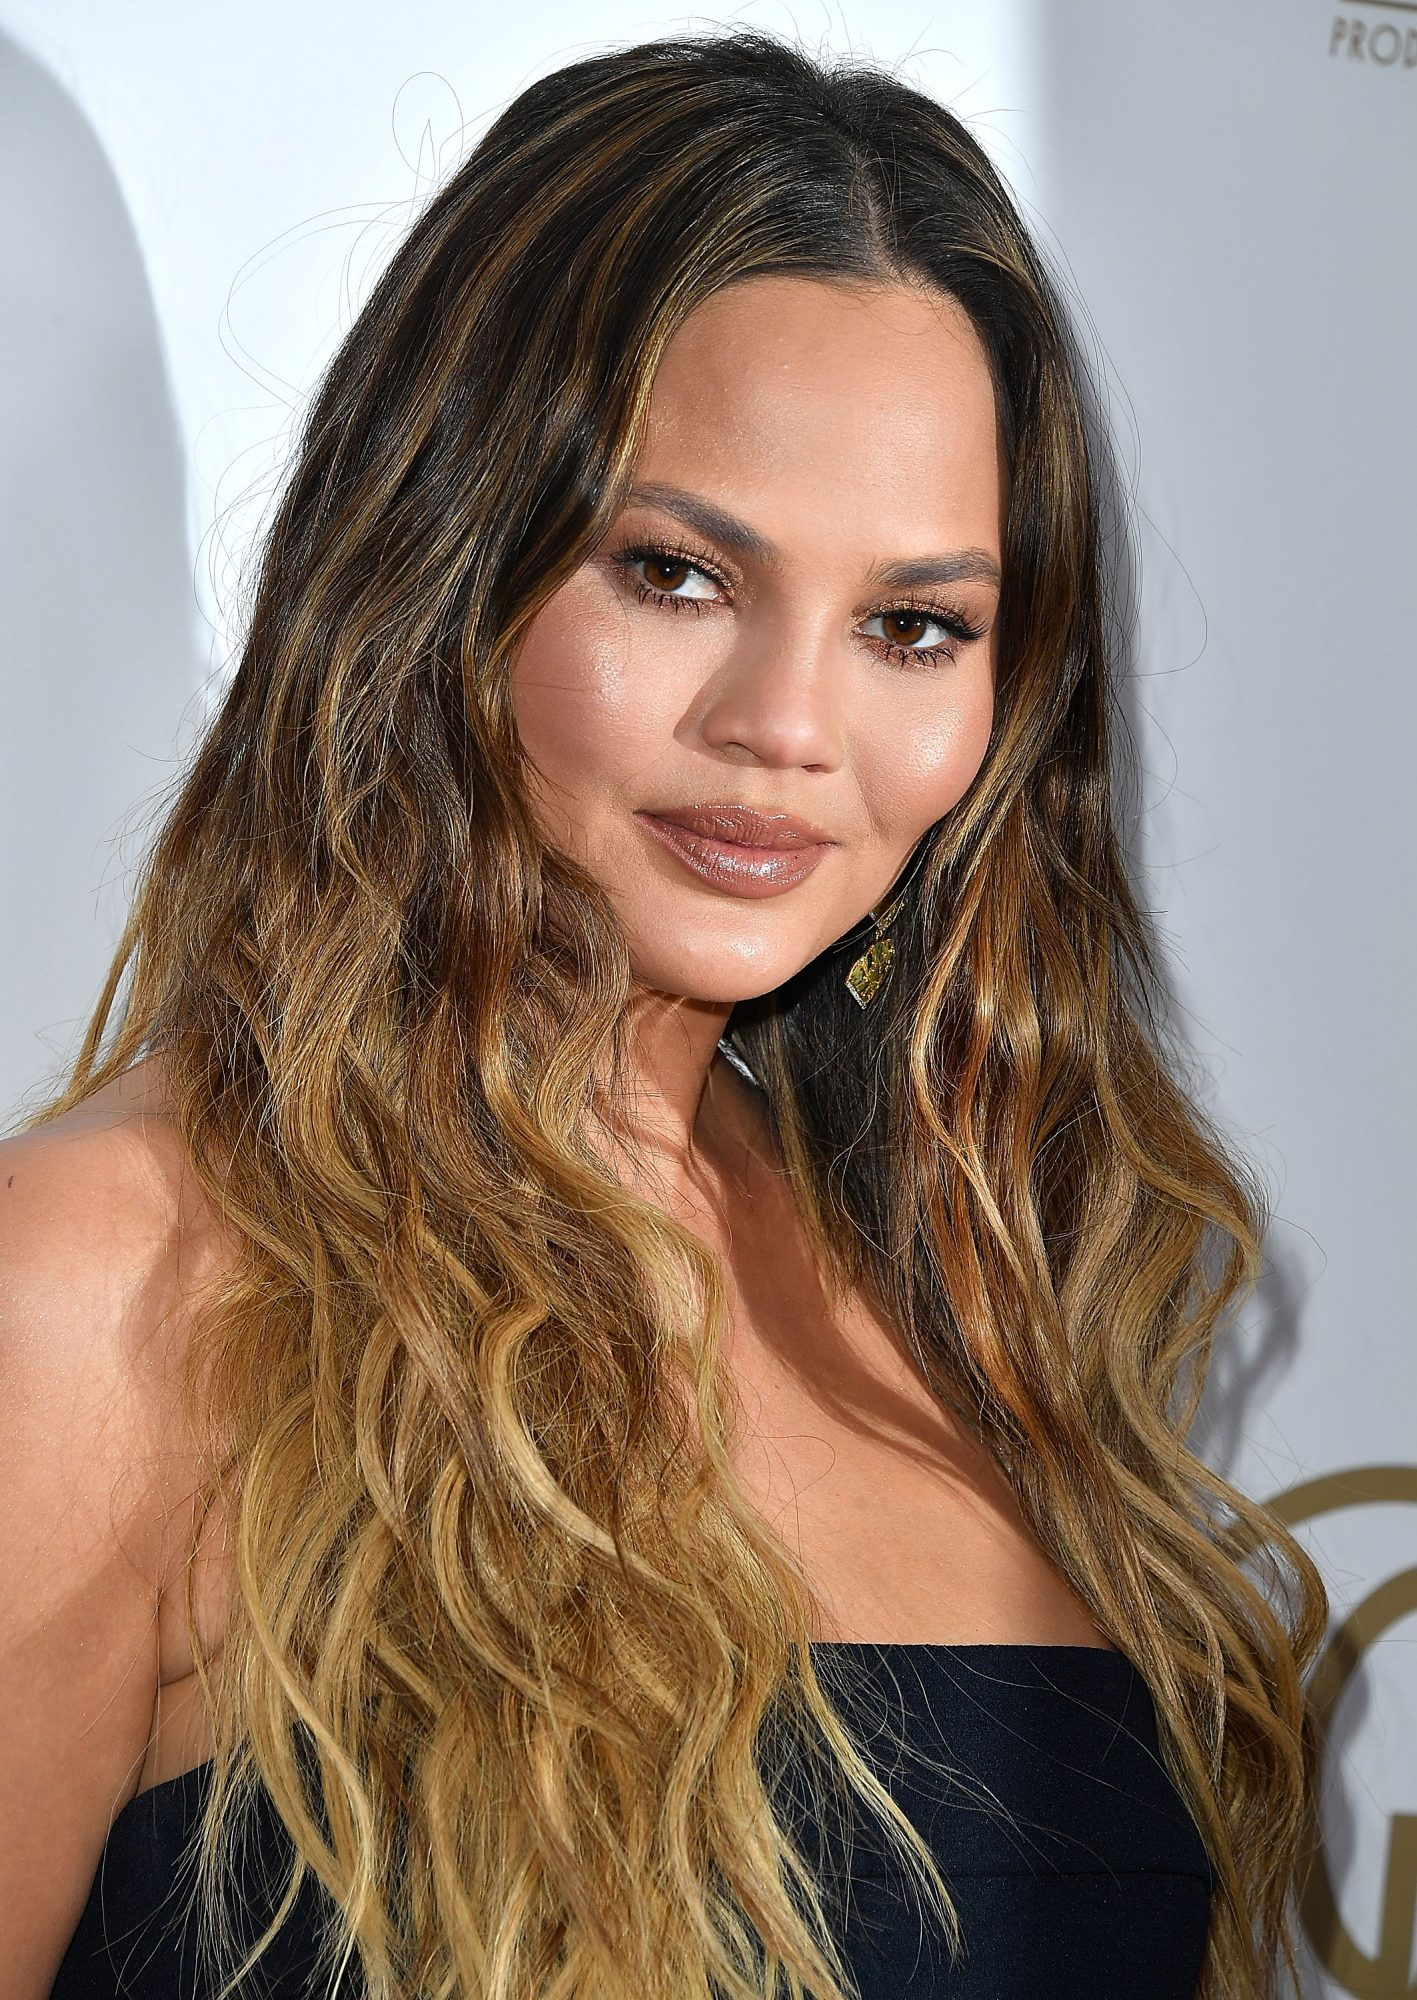 chrissy-teigen-no-smile